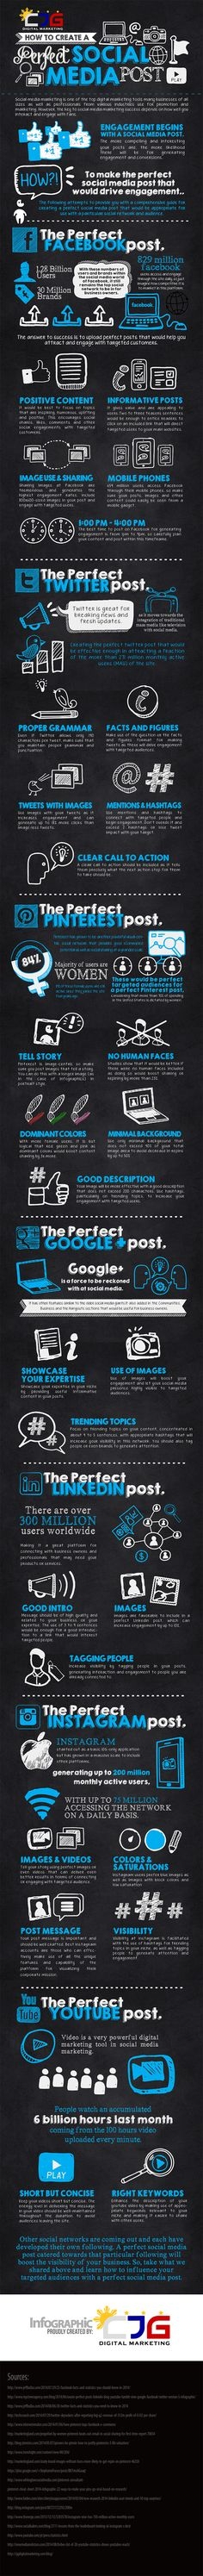 How to Create Engaging and Shareworthy Social Media Posts #Infographic